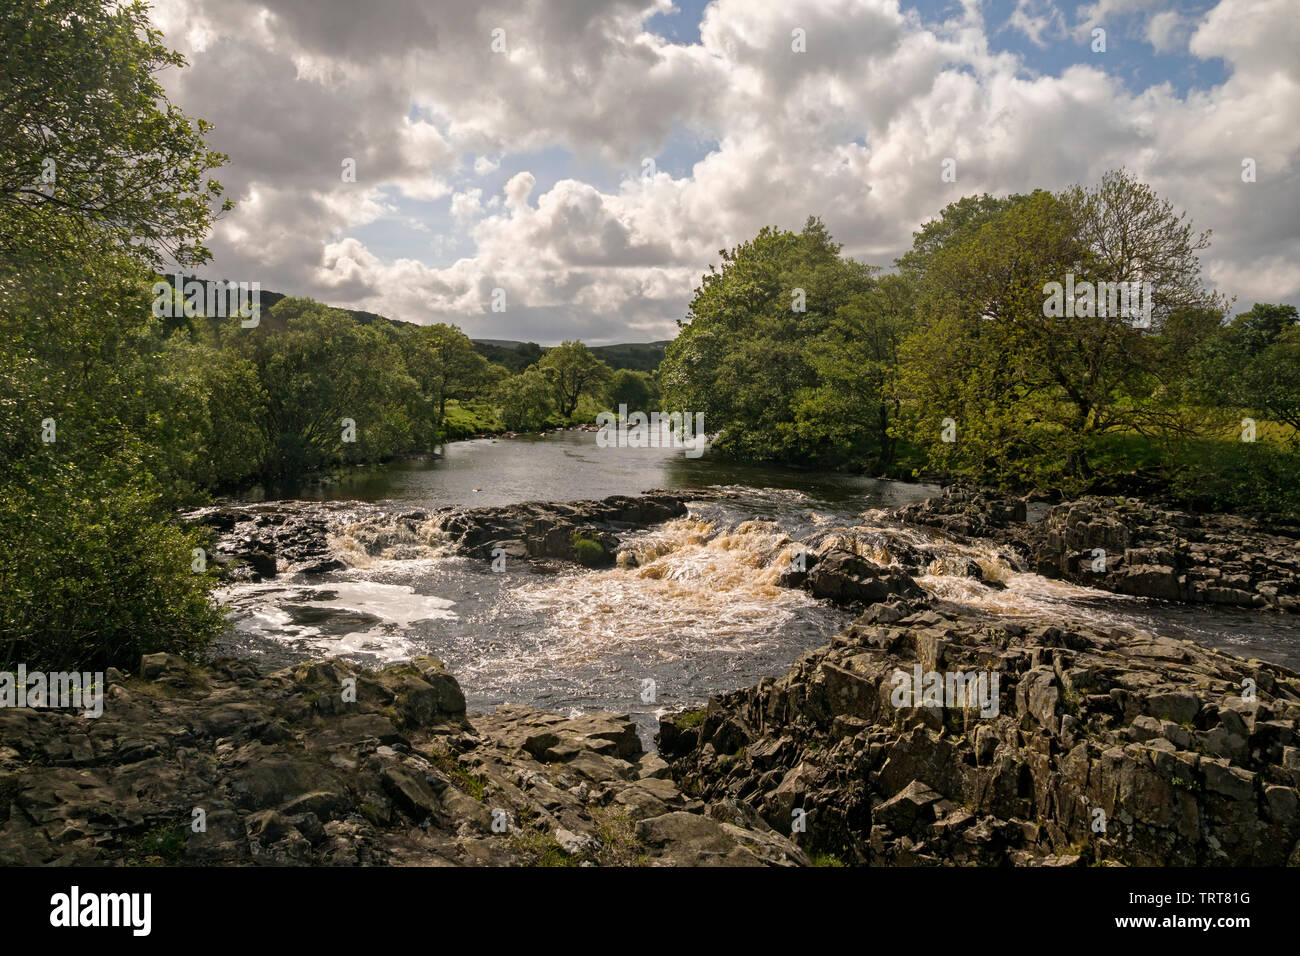 River Tees in Upper Teesdale just below High Force - Stock Image